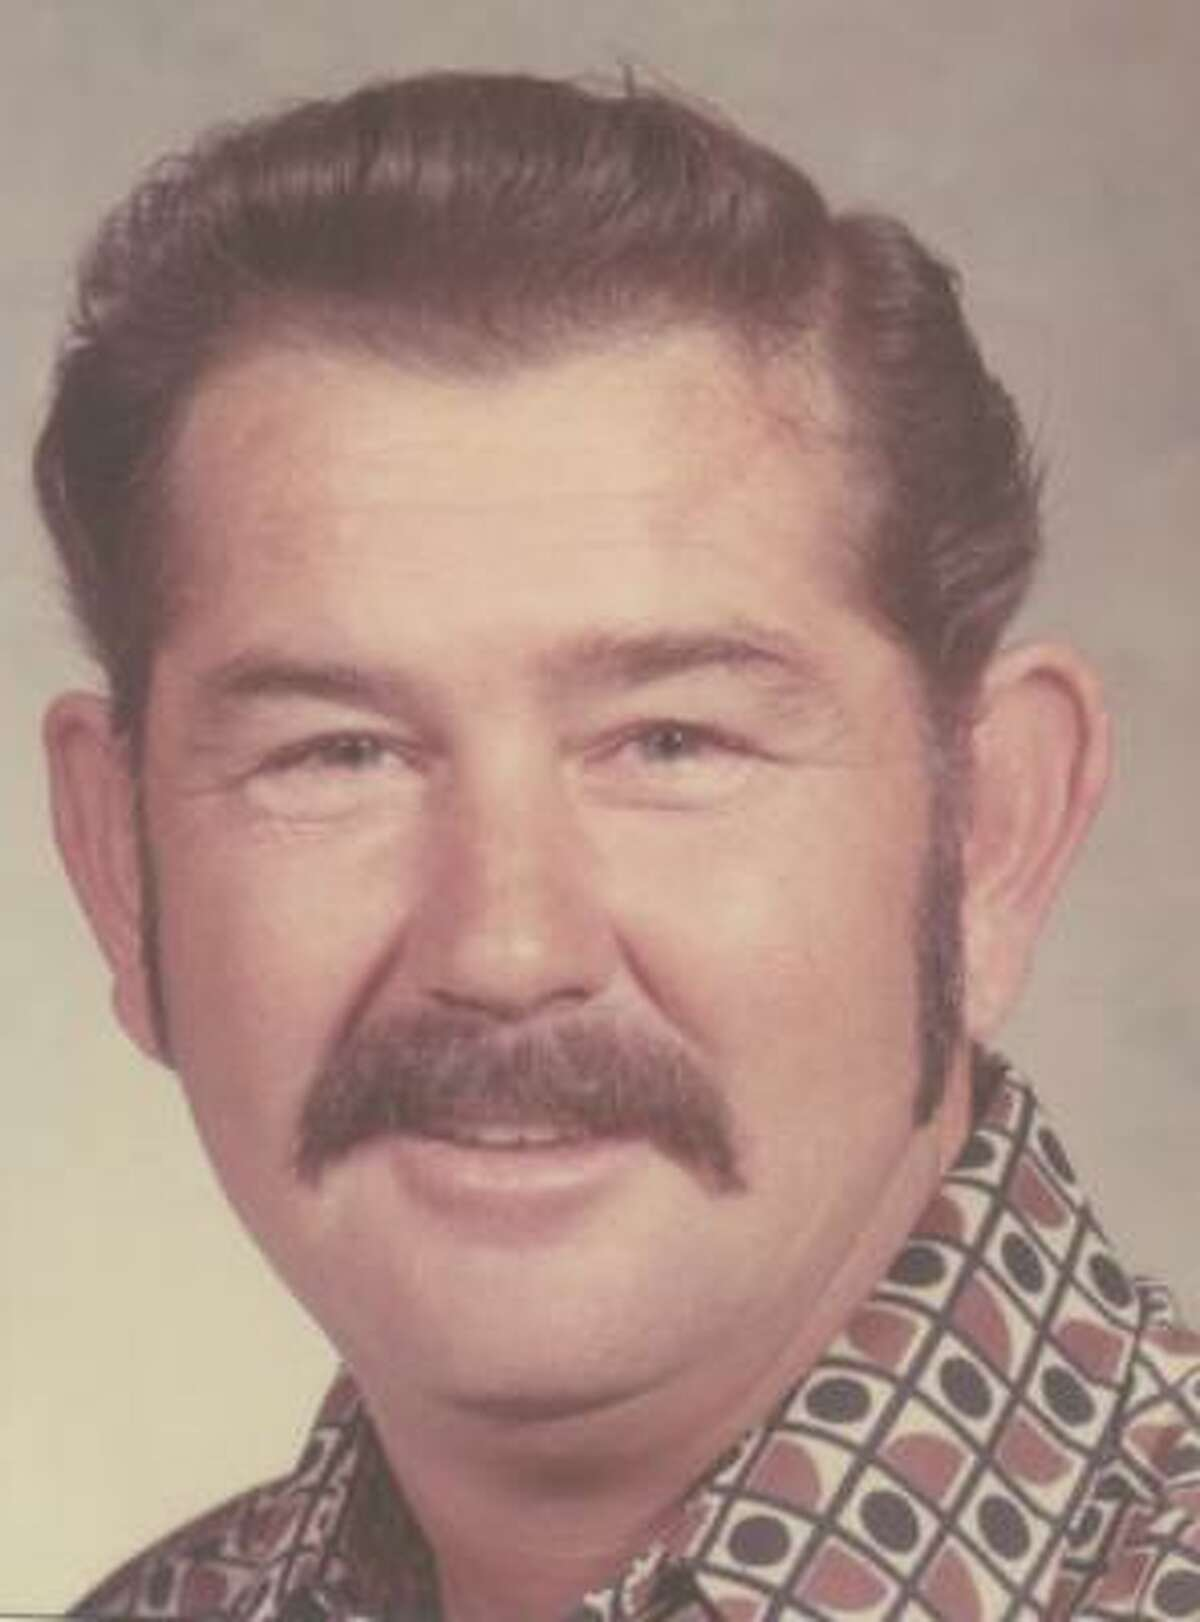 Roy McCaleb was shot to death in 1985 while he was sleeping.